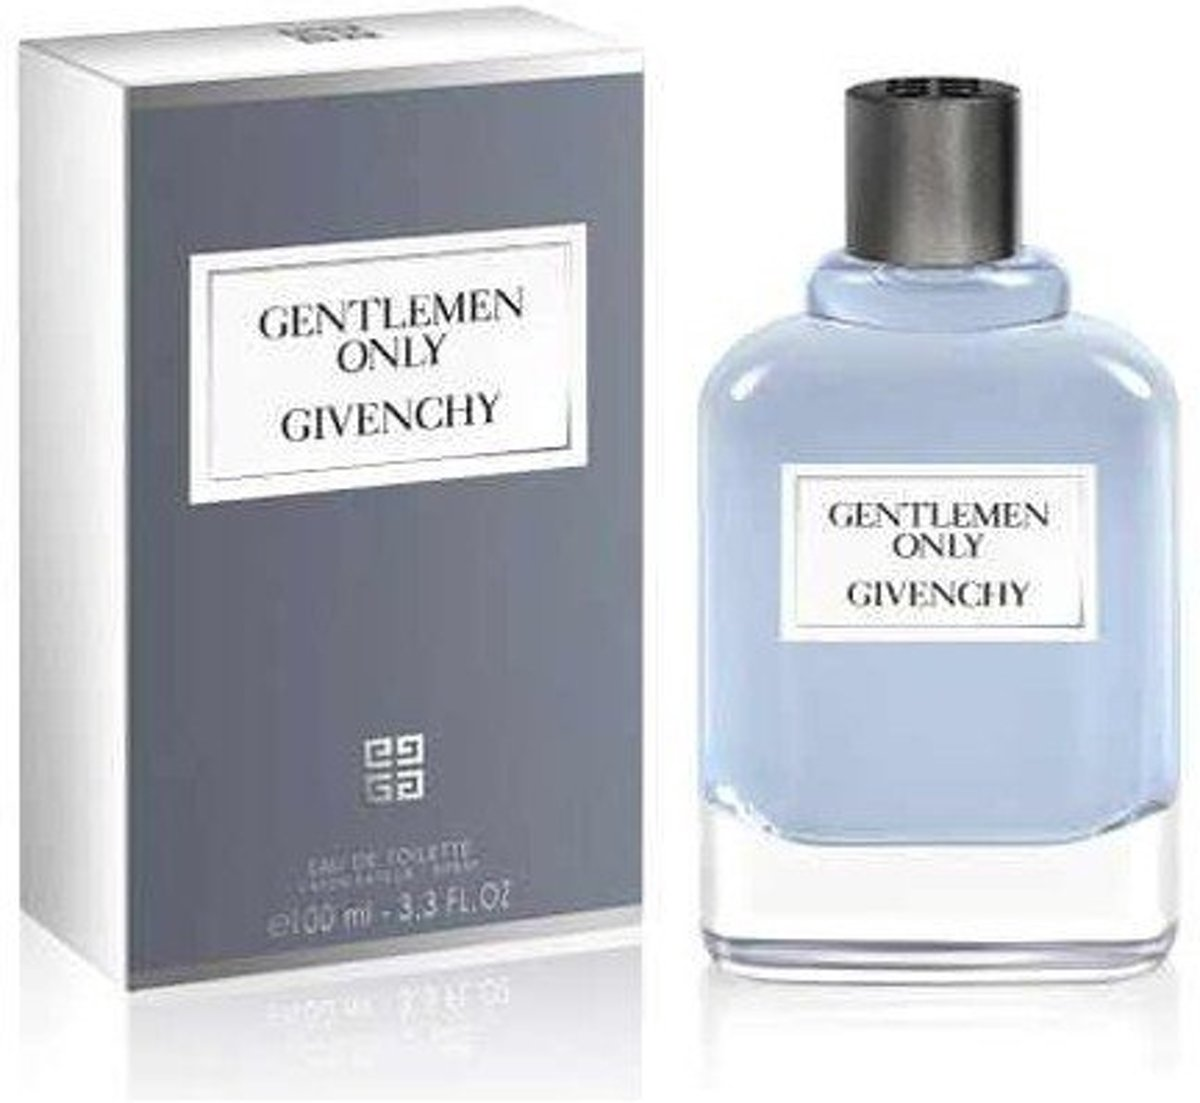 Givenchy Gentlemen Only - 50 ml - Eau de toilette